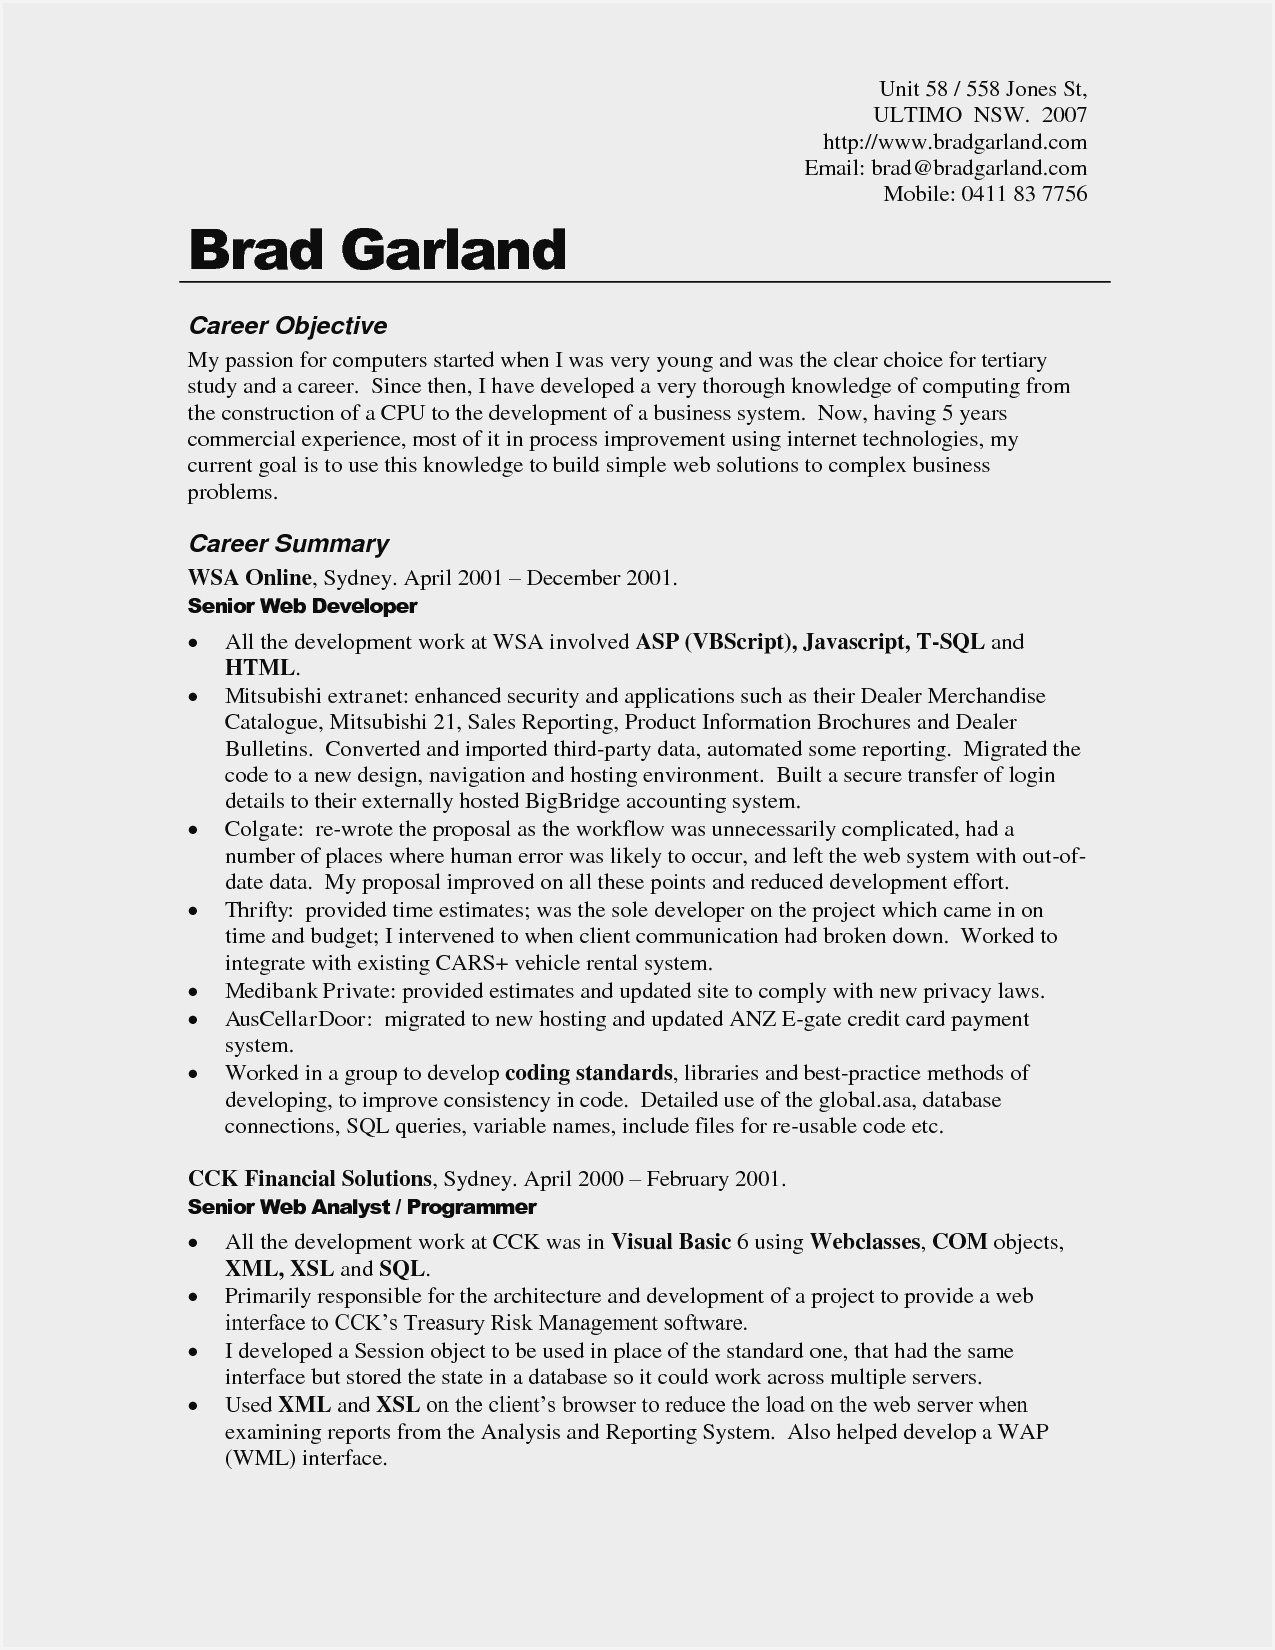 examples of great resume objective statements sample best data warehouse experience cable Resume Best Resume Objective Statements